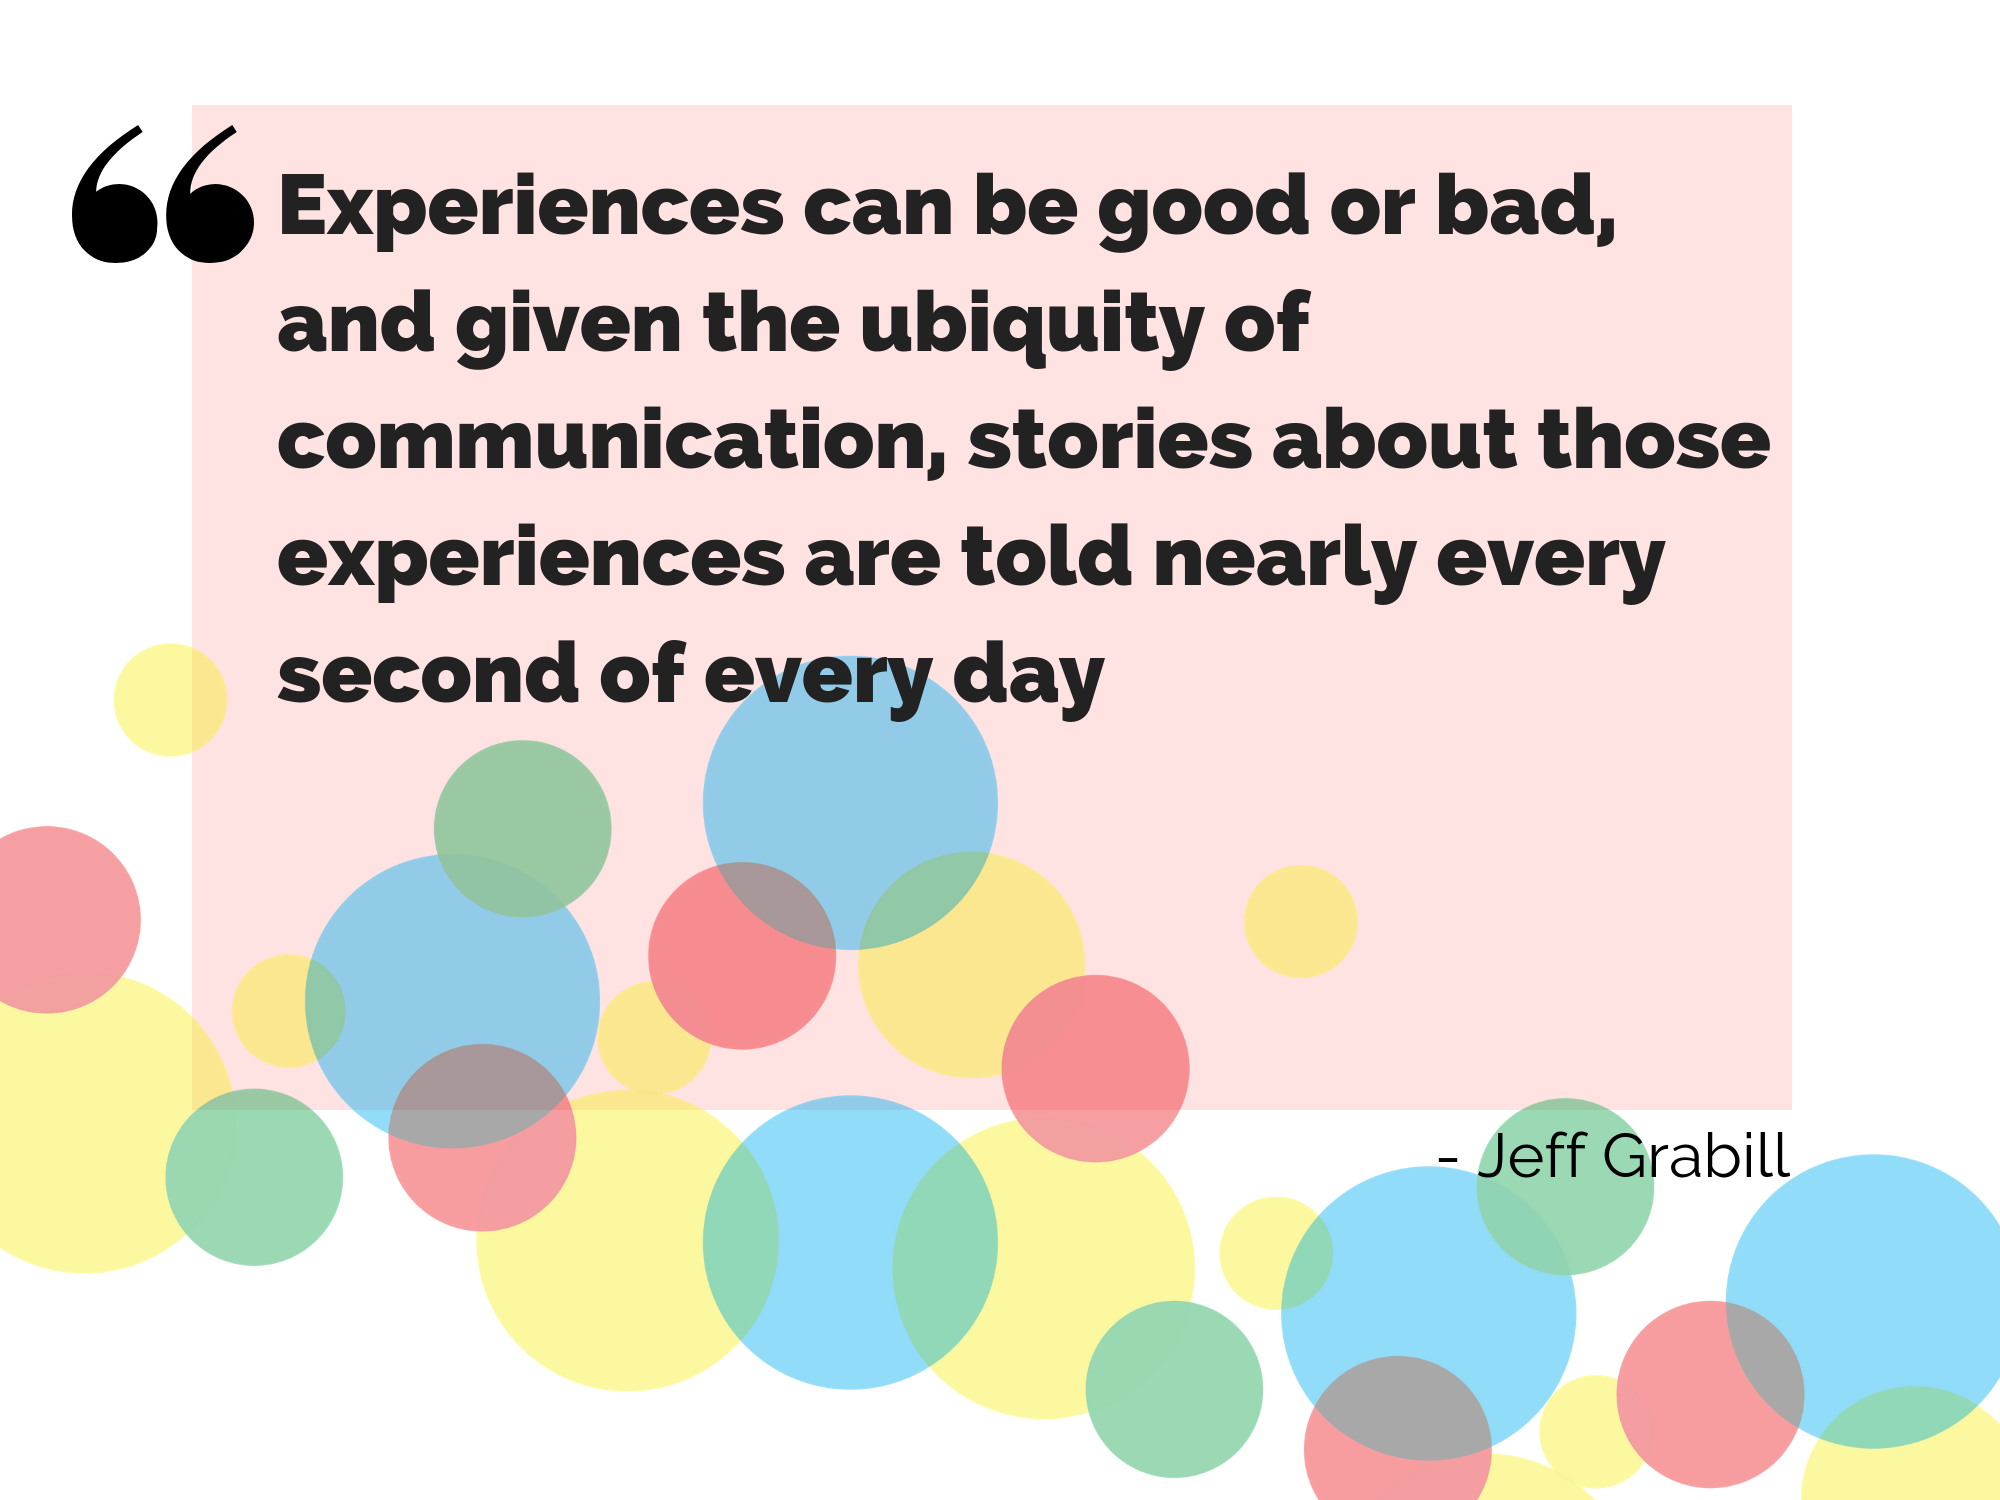 Experiences can be good or bad, and given the ubiquity of communication, stories about those experiences are told nearly every second of every day